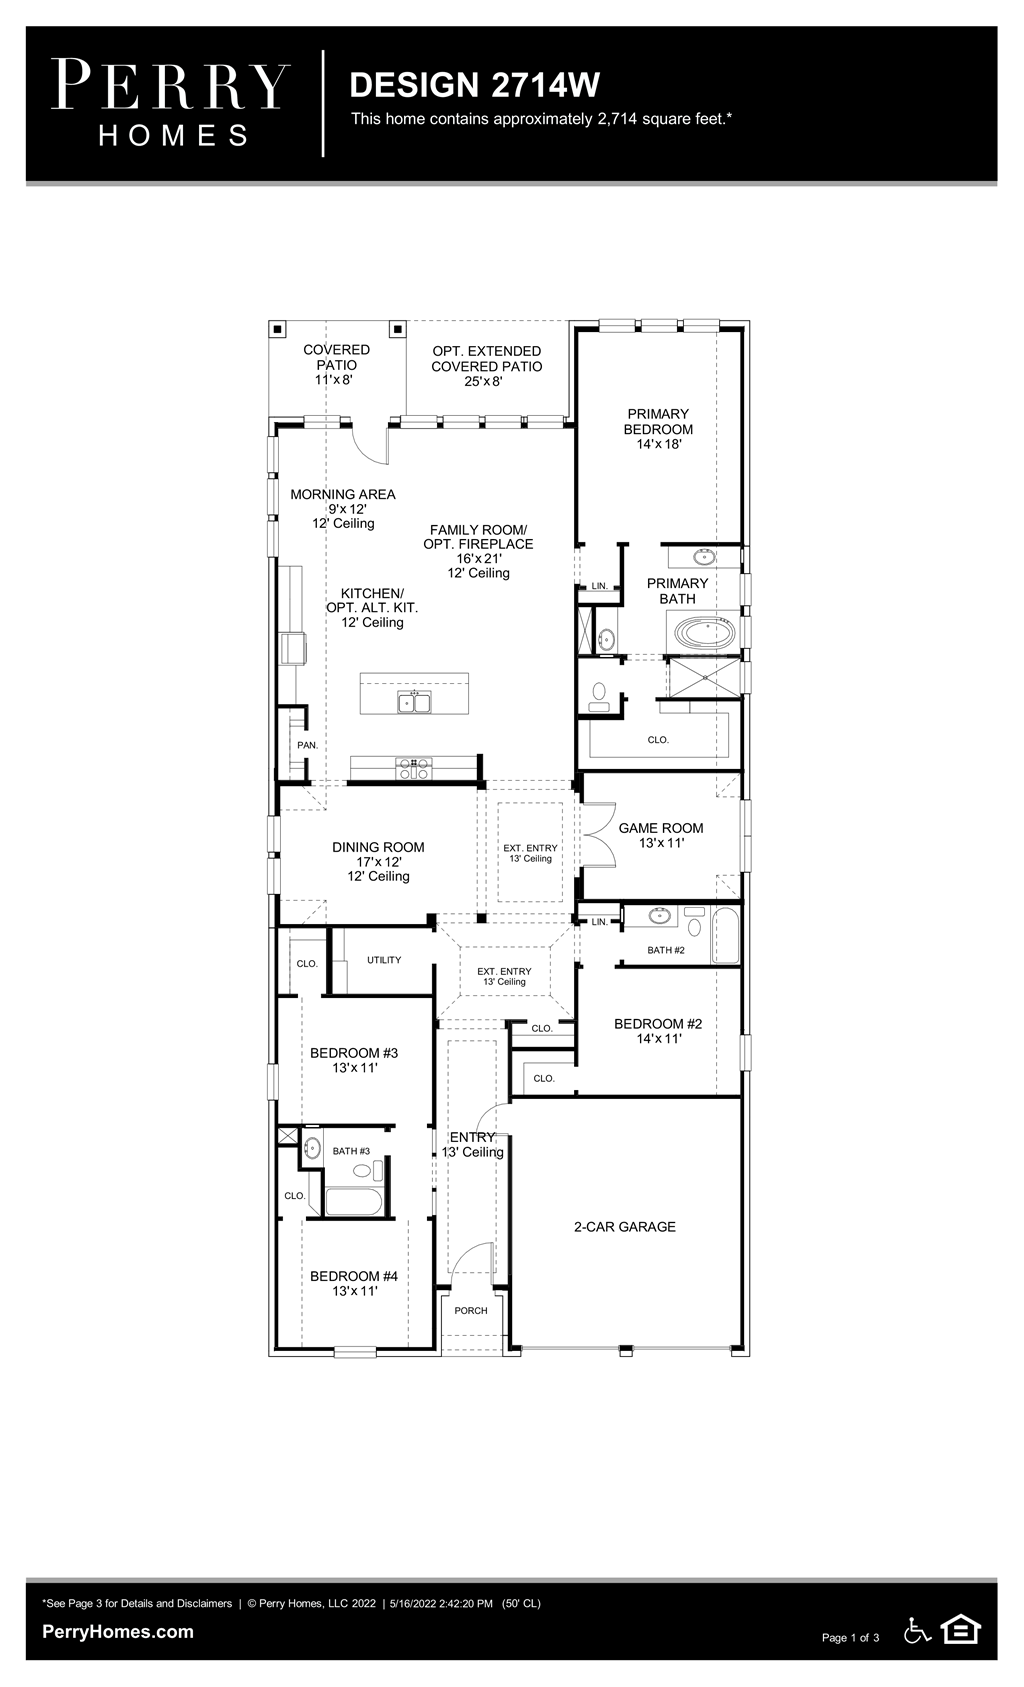 Floor Plan for 2714W